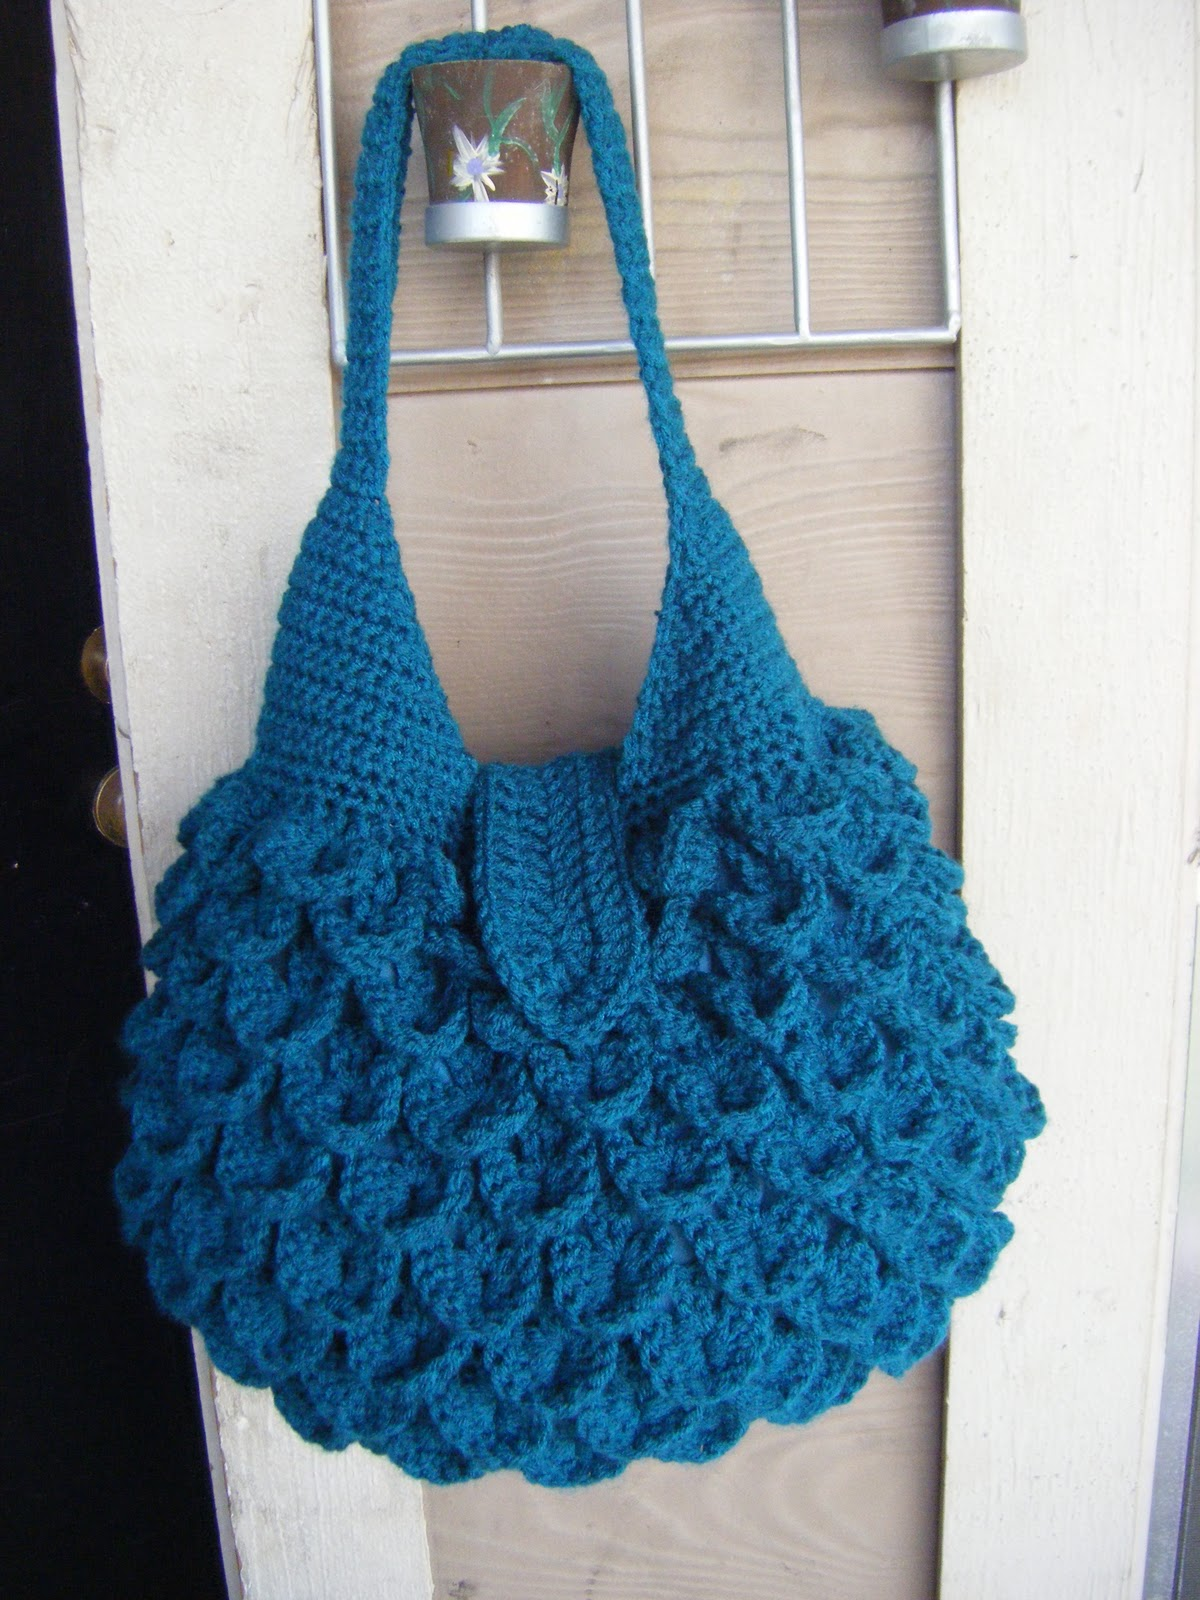 Crochet Bags Video : Best Patterns: Crocodile Crochet Bag PATTERN